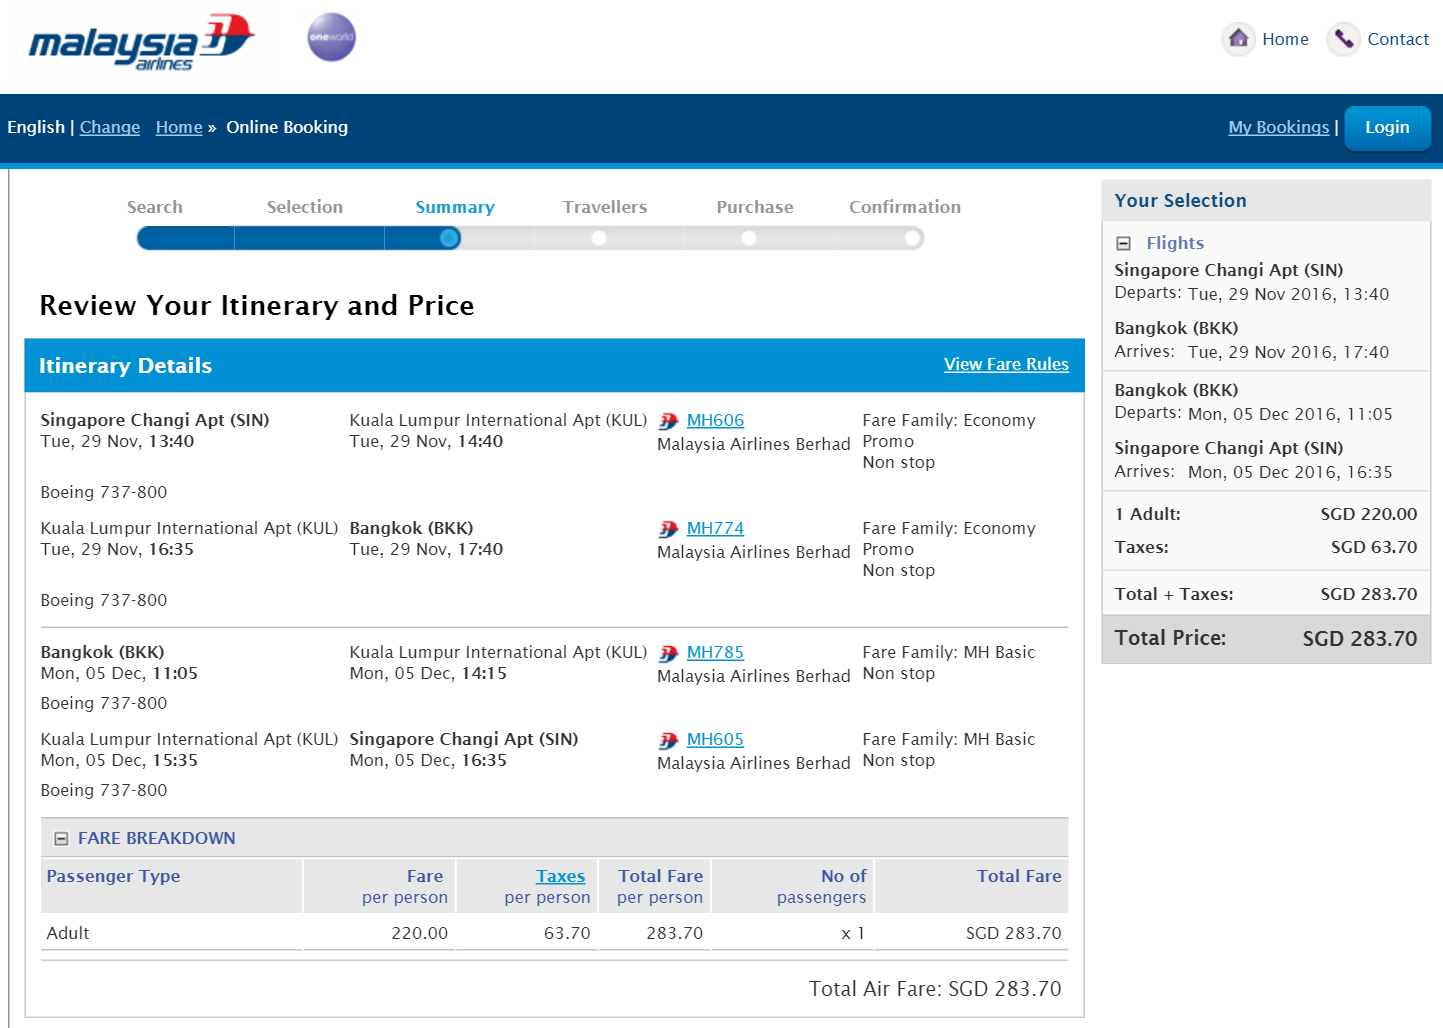 singapore to bangkok via KUL